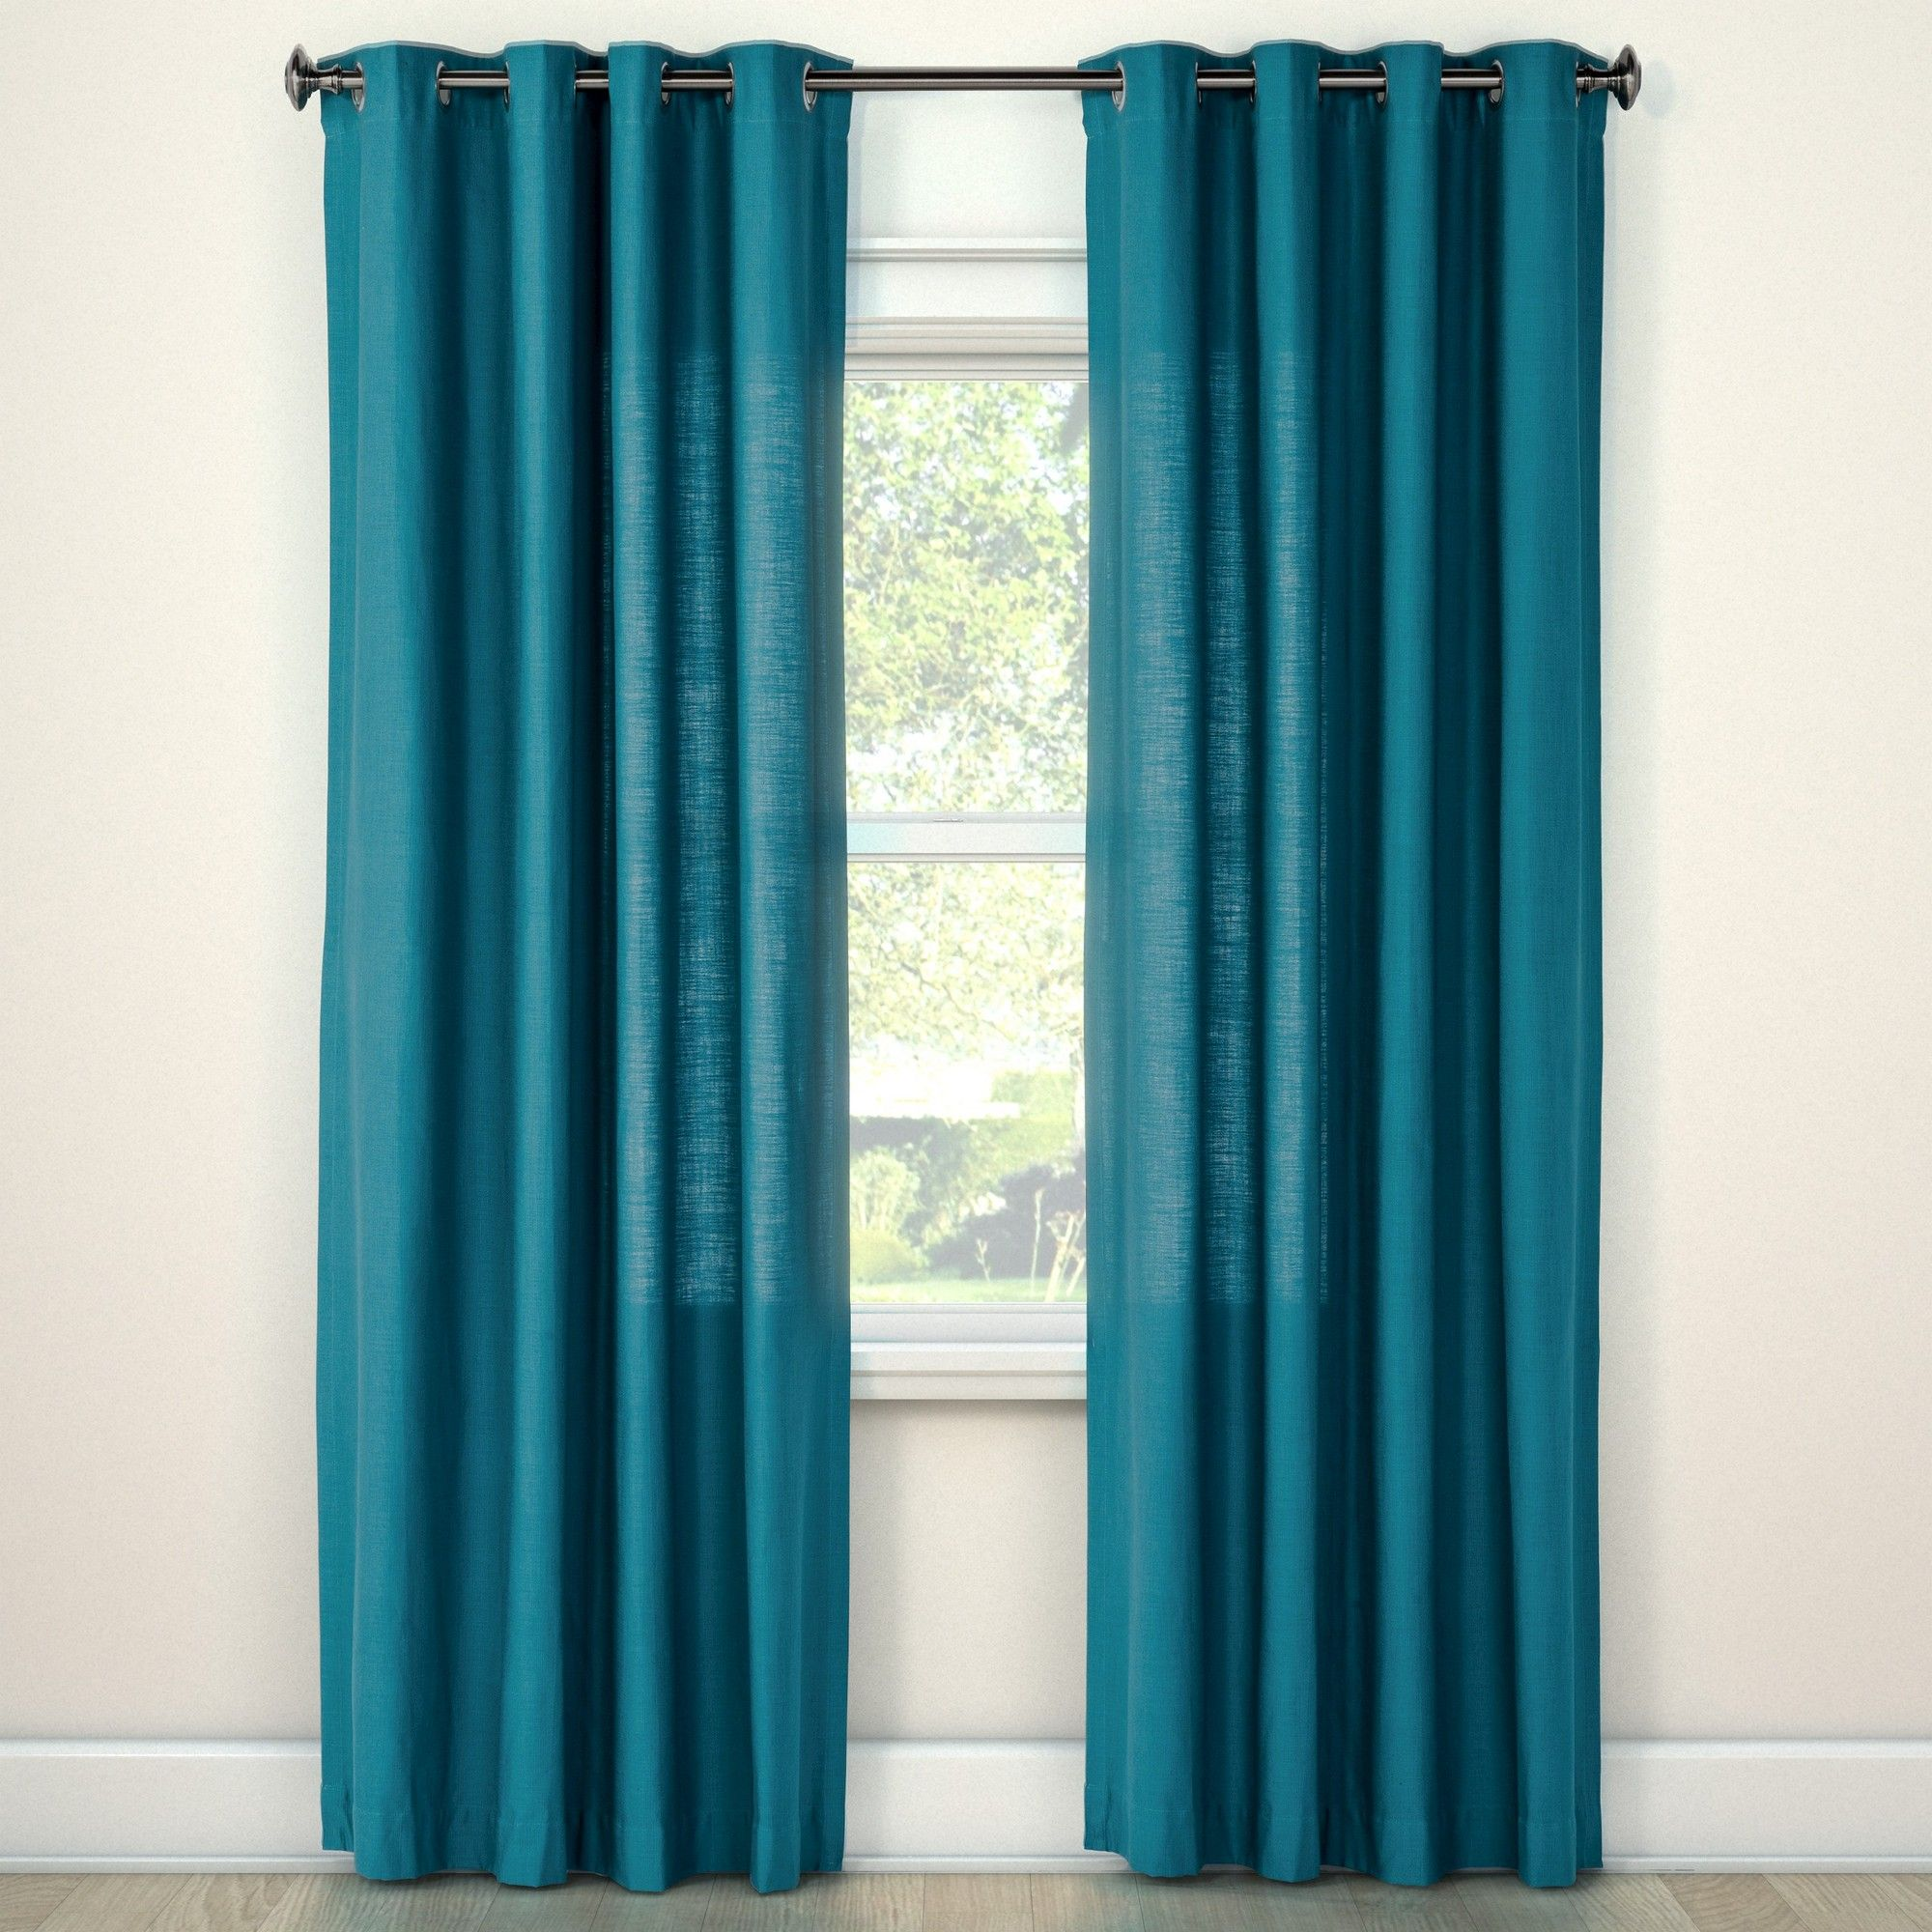 95 X54 Natural Solid Curtain Panel Turquoise Threshold Solid Curtains Velvet Curtains Curtains